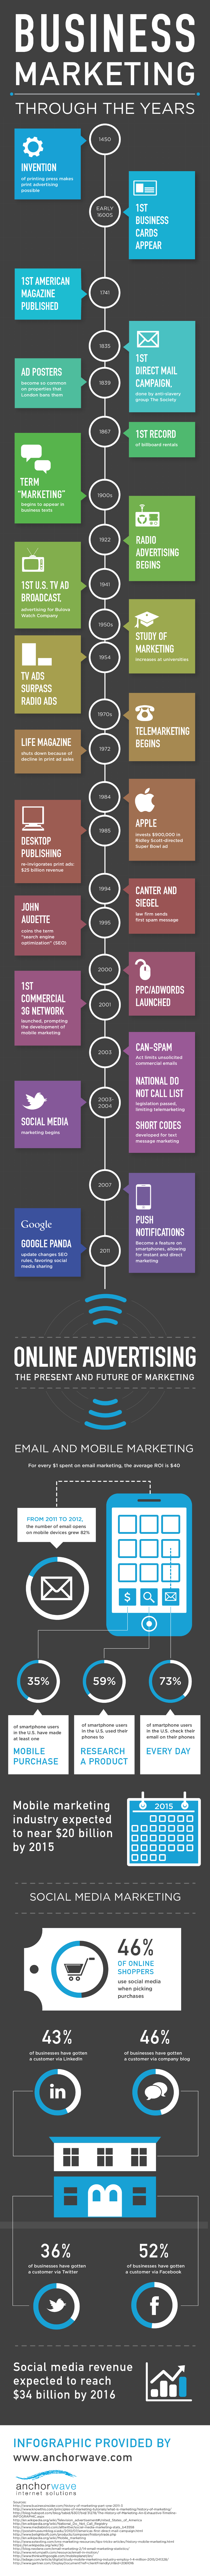 Timeline-of-Business-Marketing